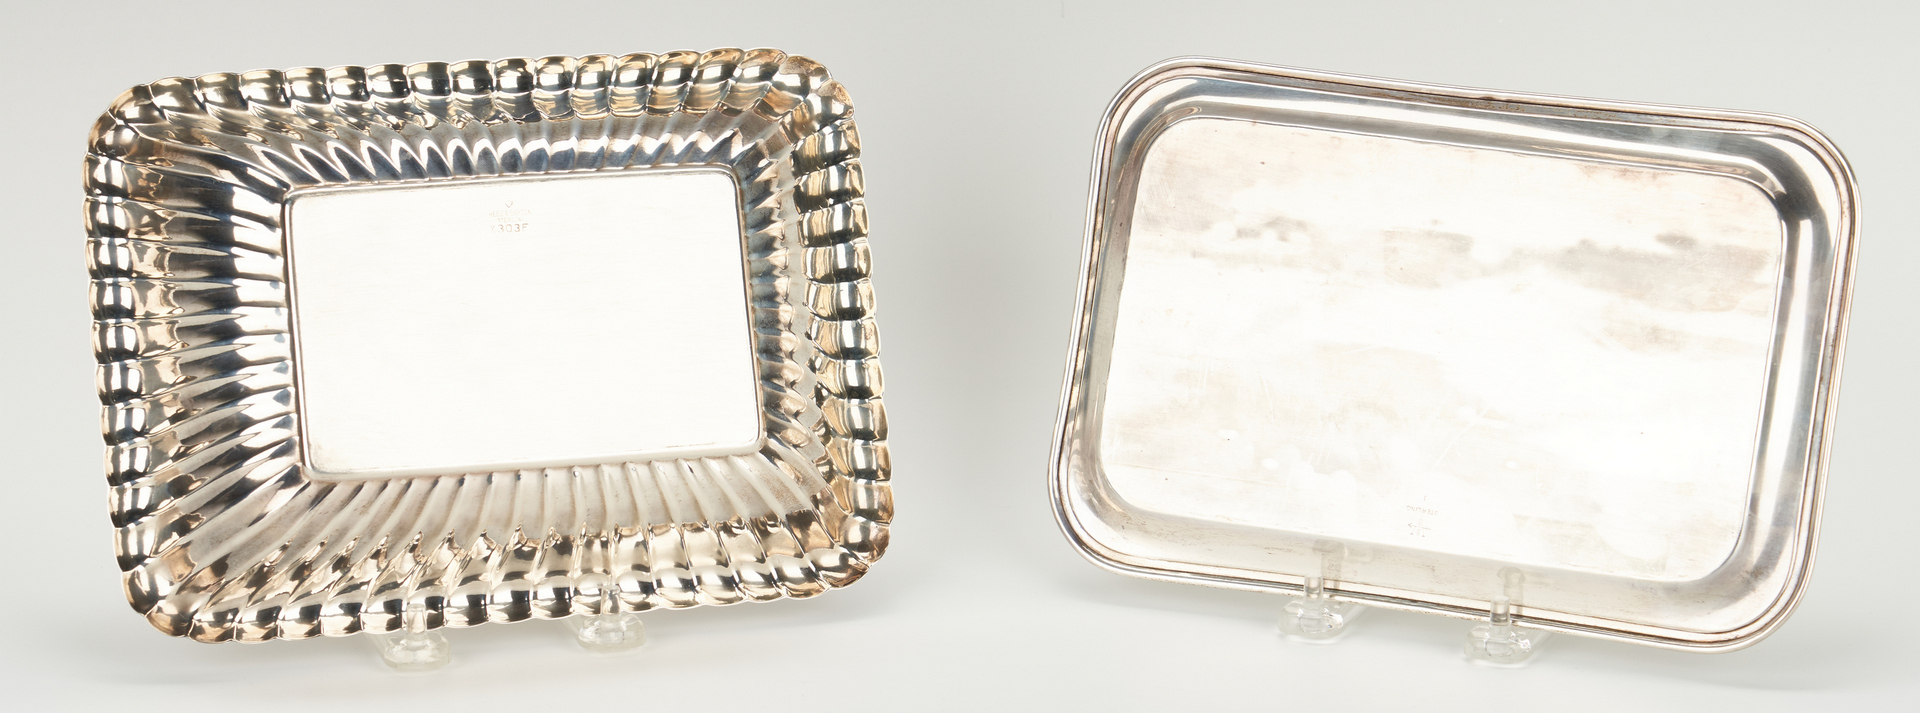 Lot 744: 16 Assd. Sterling Silver items, incl. Reed & Barton, Whiting